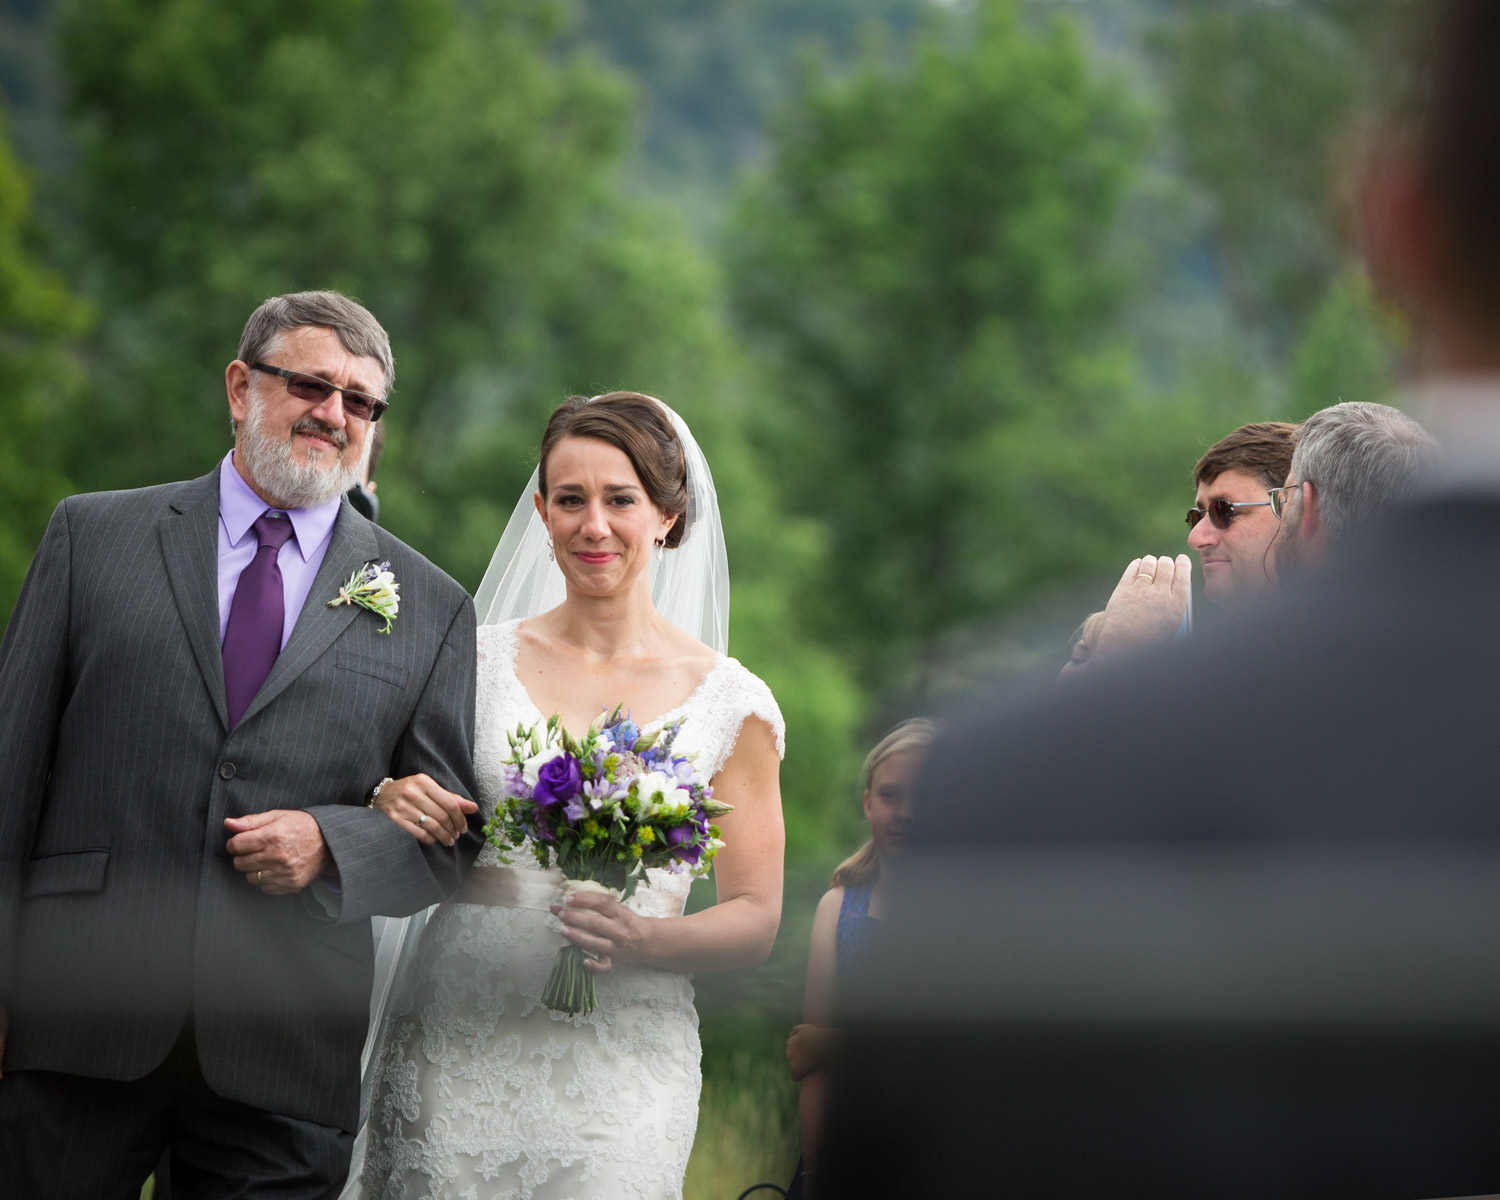 A bride looks toward her groom as she walks down the aisle with her father in the ceremony field at Bliss Ridge by wedding photographer Stina Booth